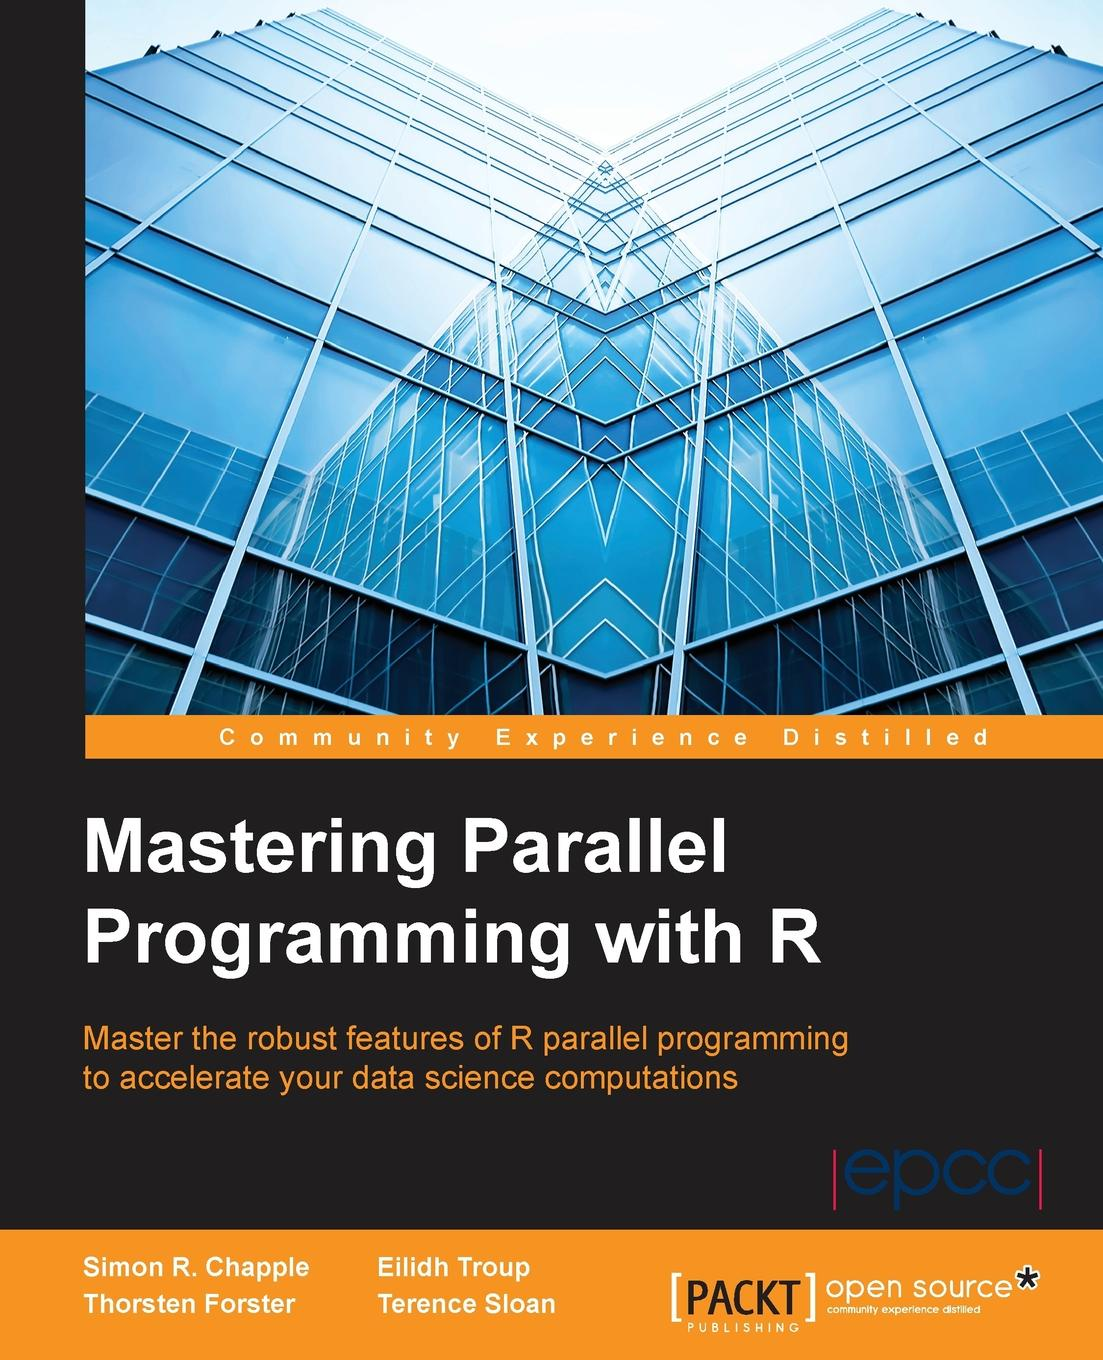 Simon R. Chapple, Eilidh Troup, Thorsten Forster Mastering Parallel Programming with R gastón hillar c professional parallel programming with c master parallel extensions with net 4